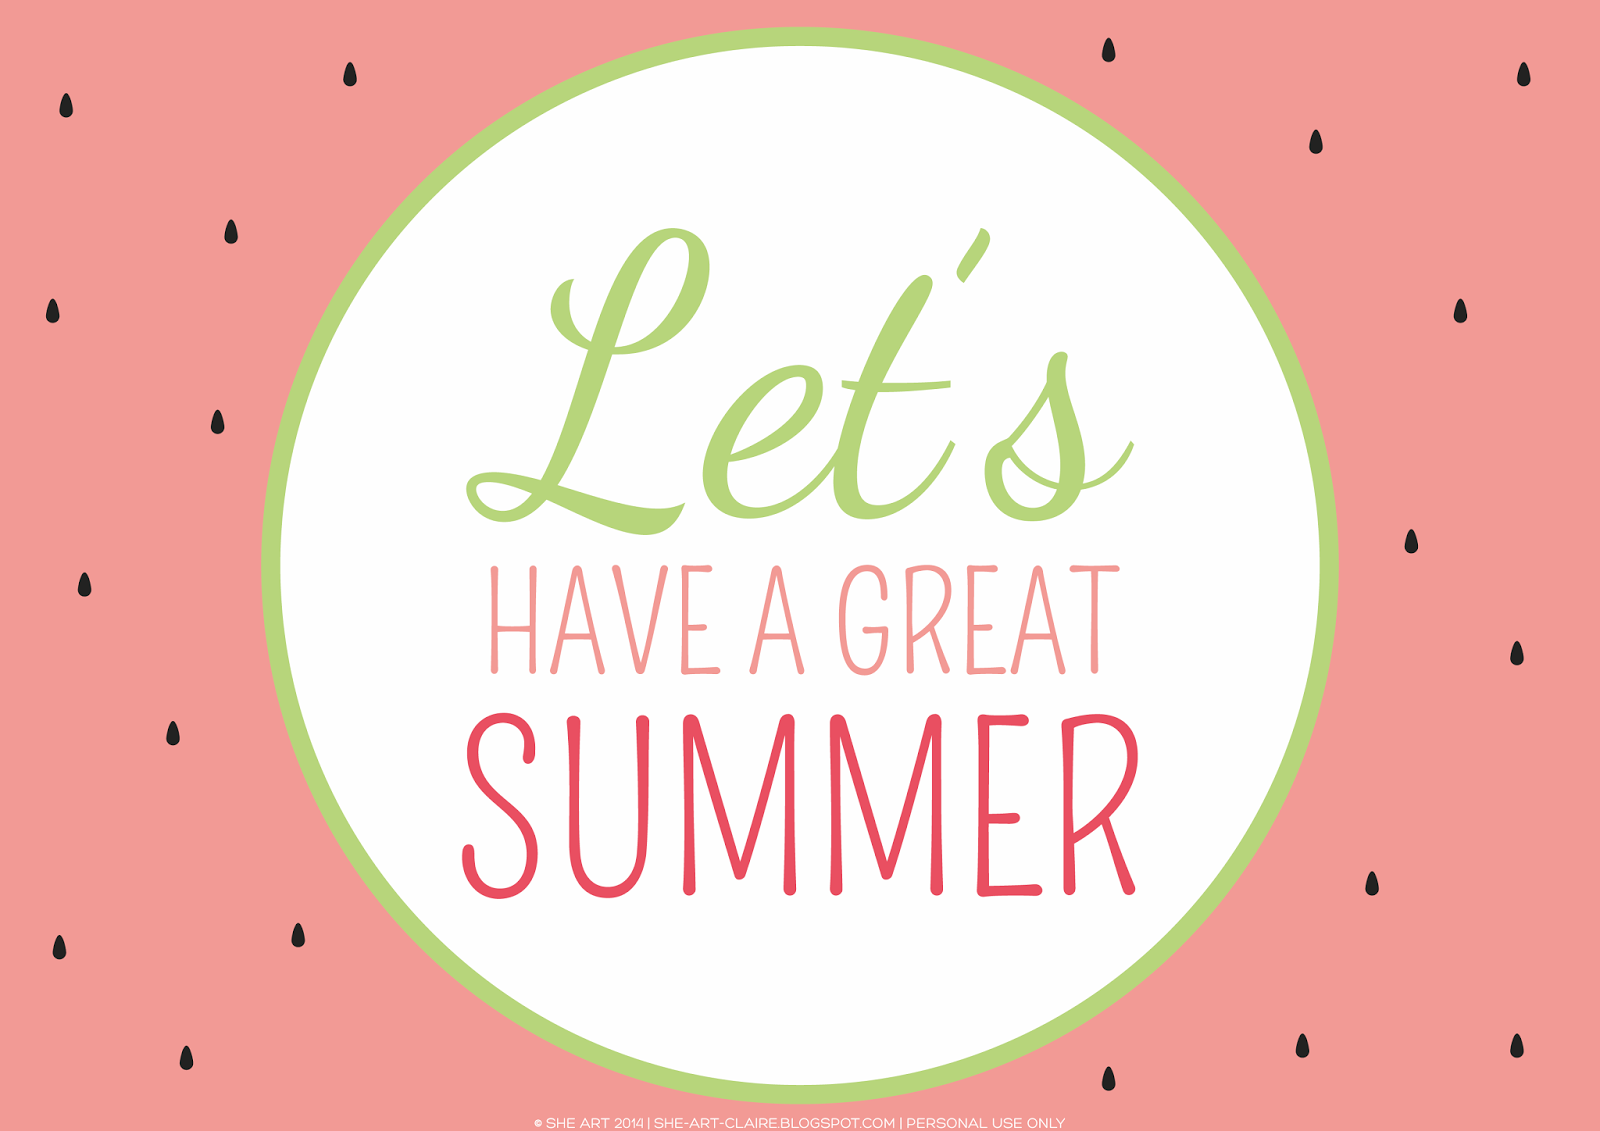 Have A Great Summer Quotes Quotesgram